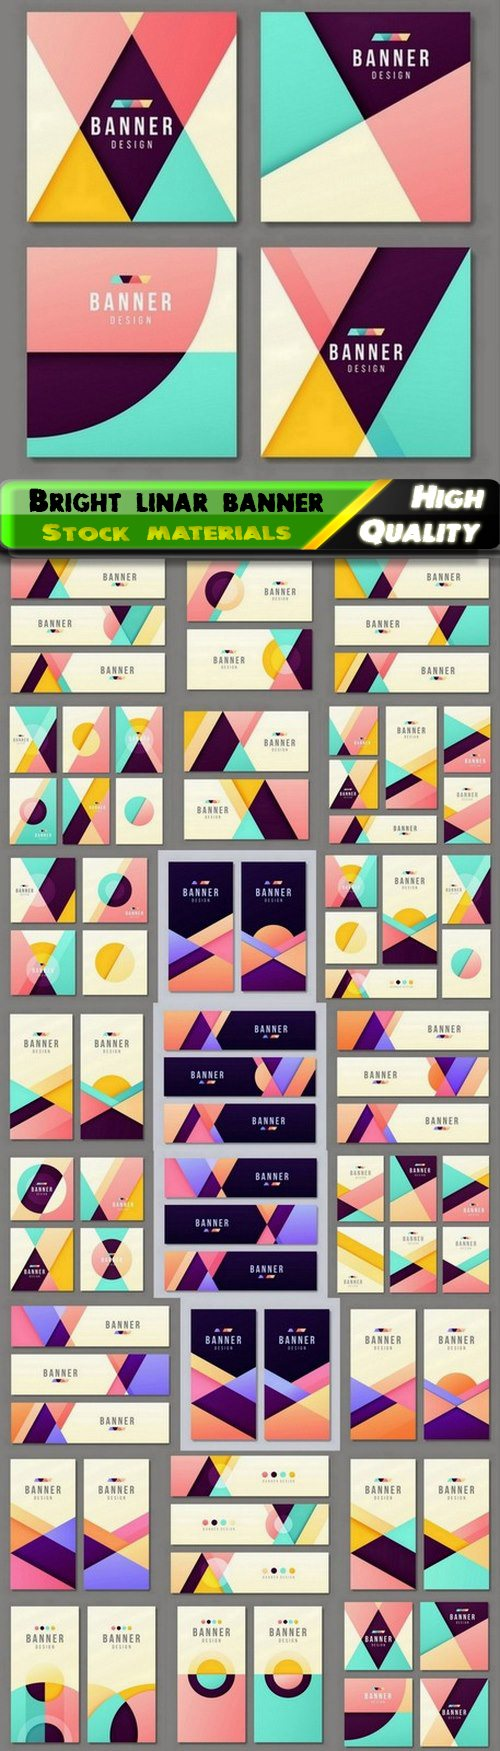 Bright linar modern banner flyer poster business card templates 25 Eps